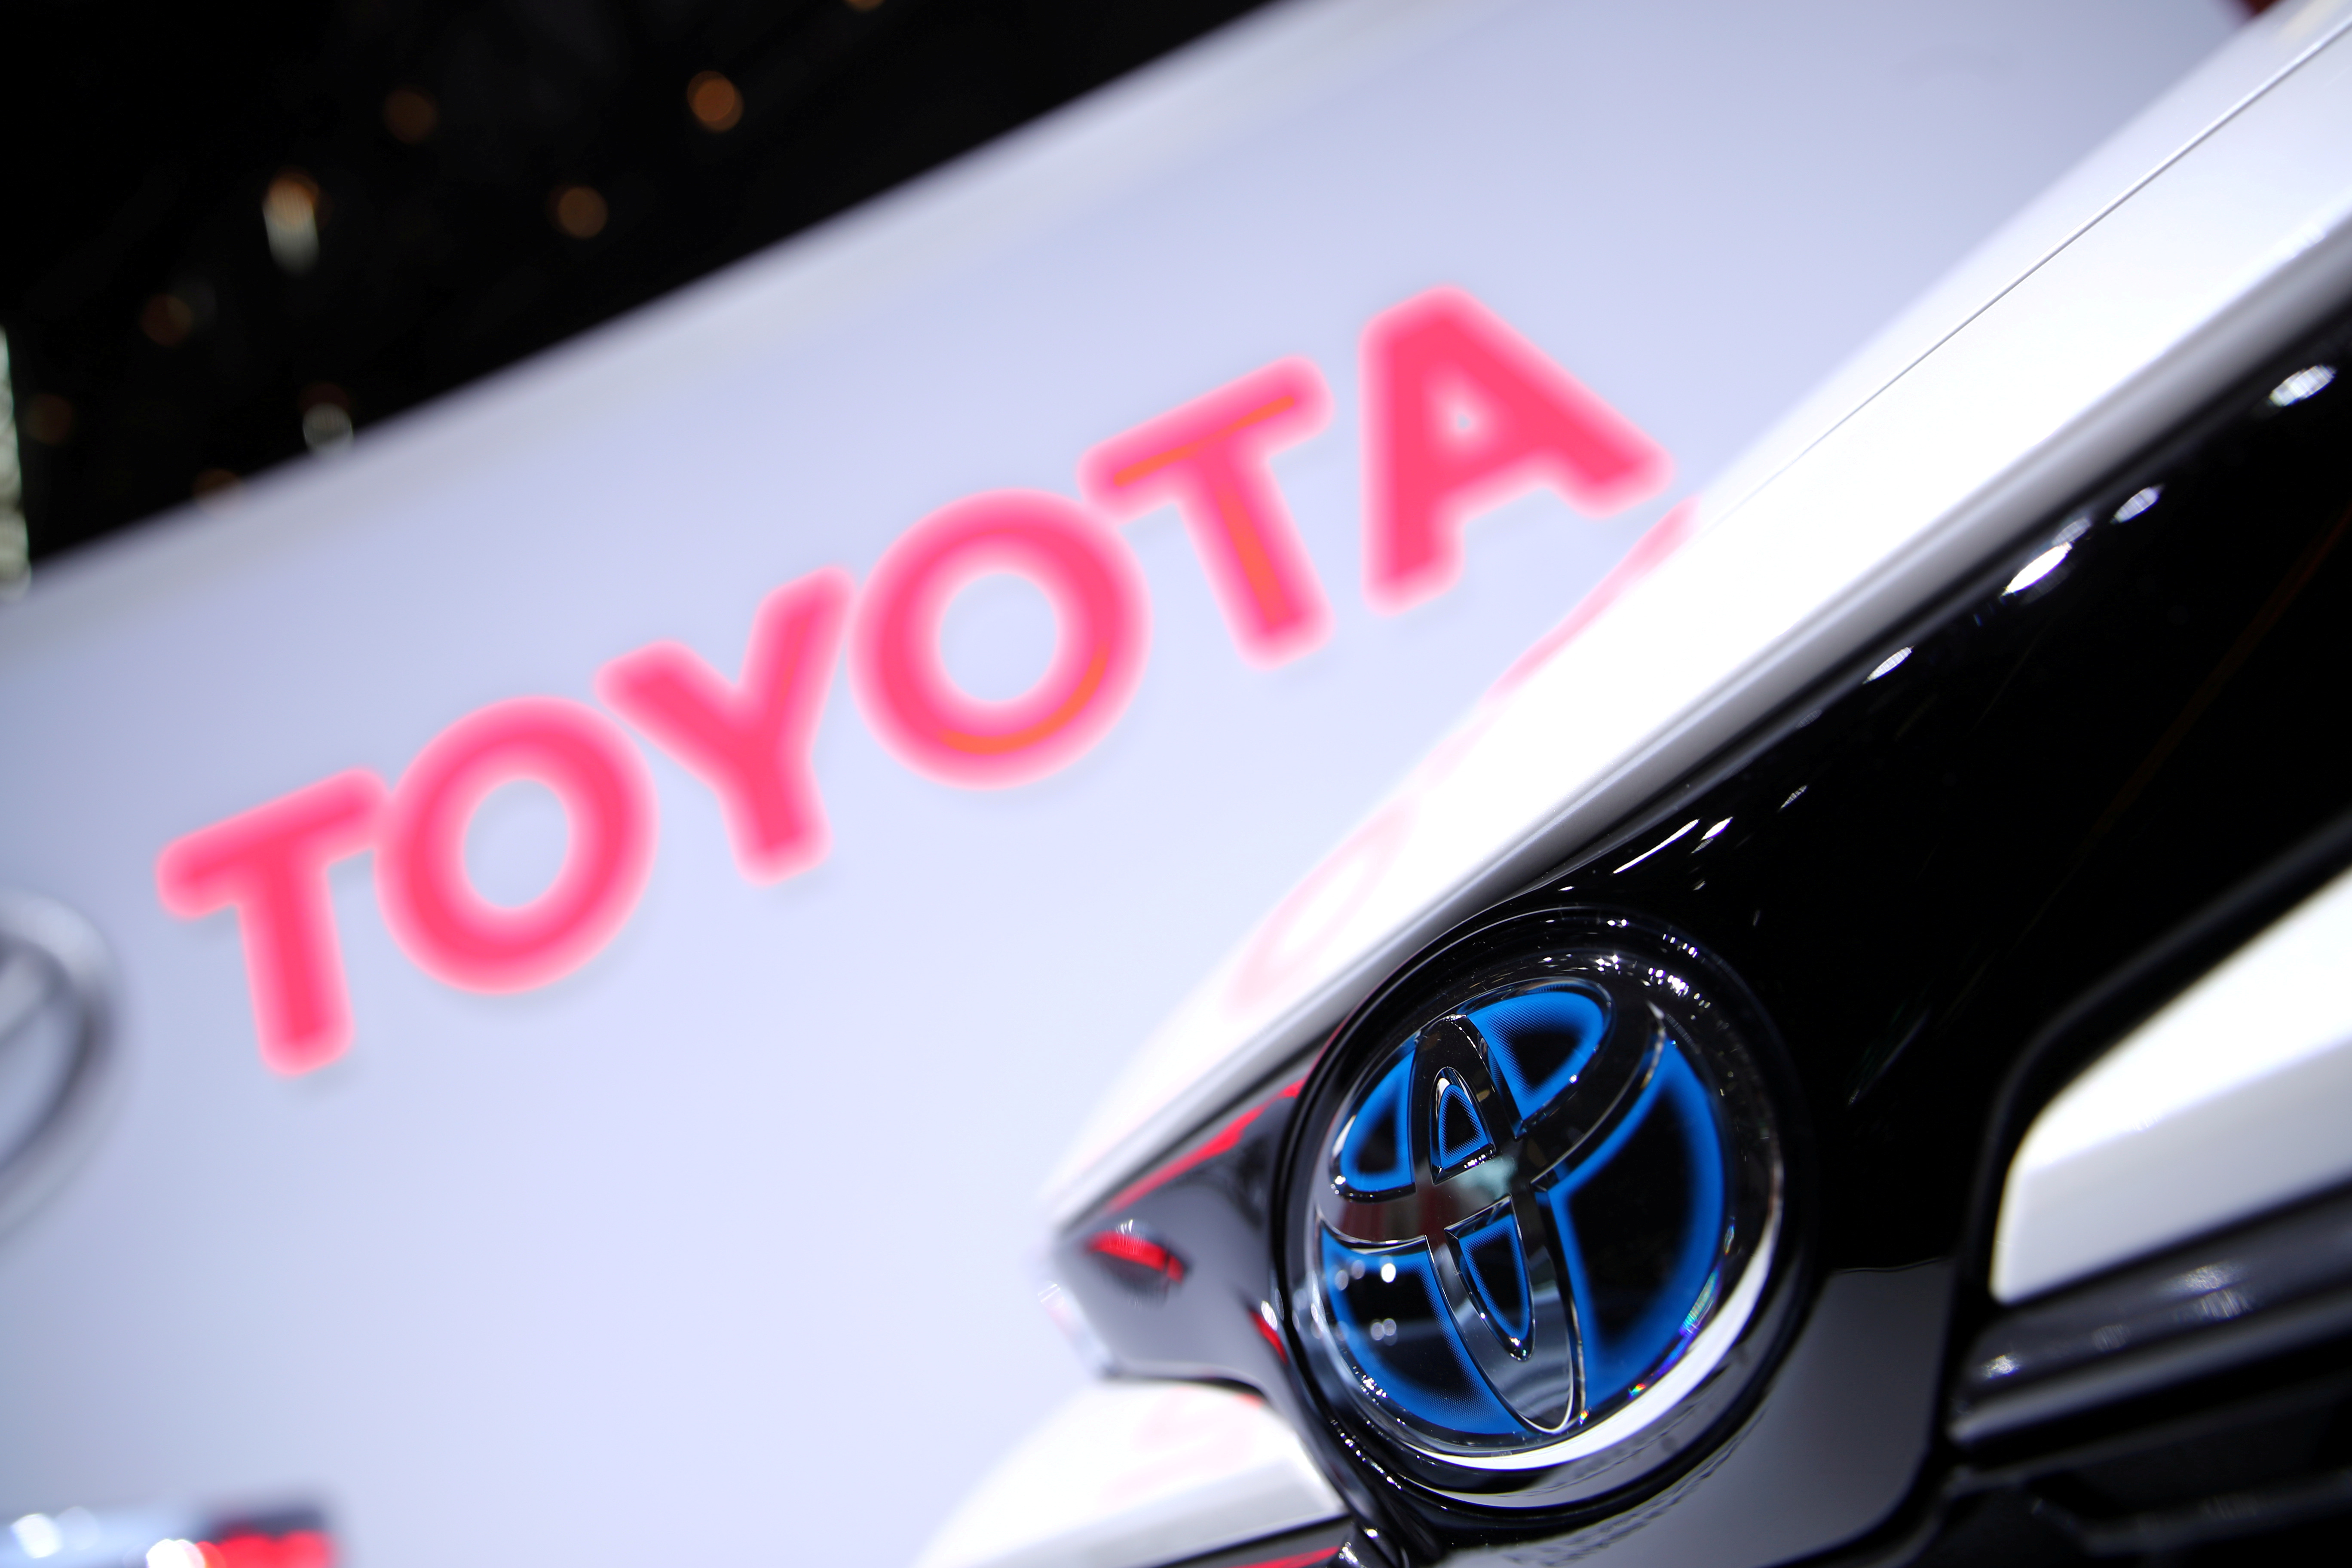 The Toyota logo is seen on a Corolla model at the 89th Geneva International Motor Show in Geneva, Switzerland March 5, 2019. REUTERS/Denis Balibouse/File Photo